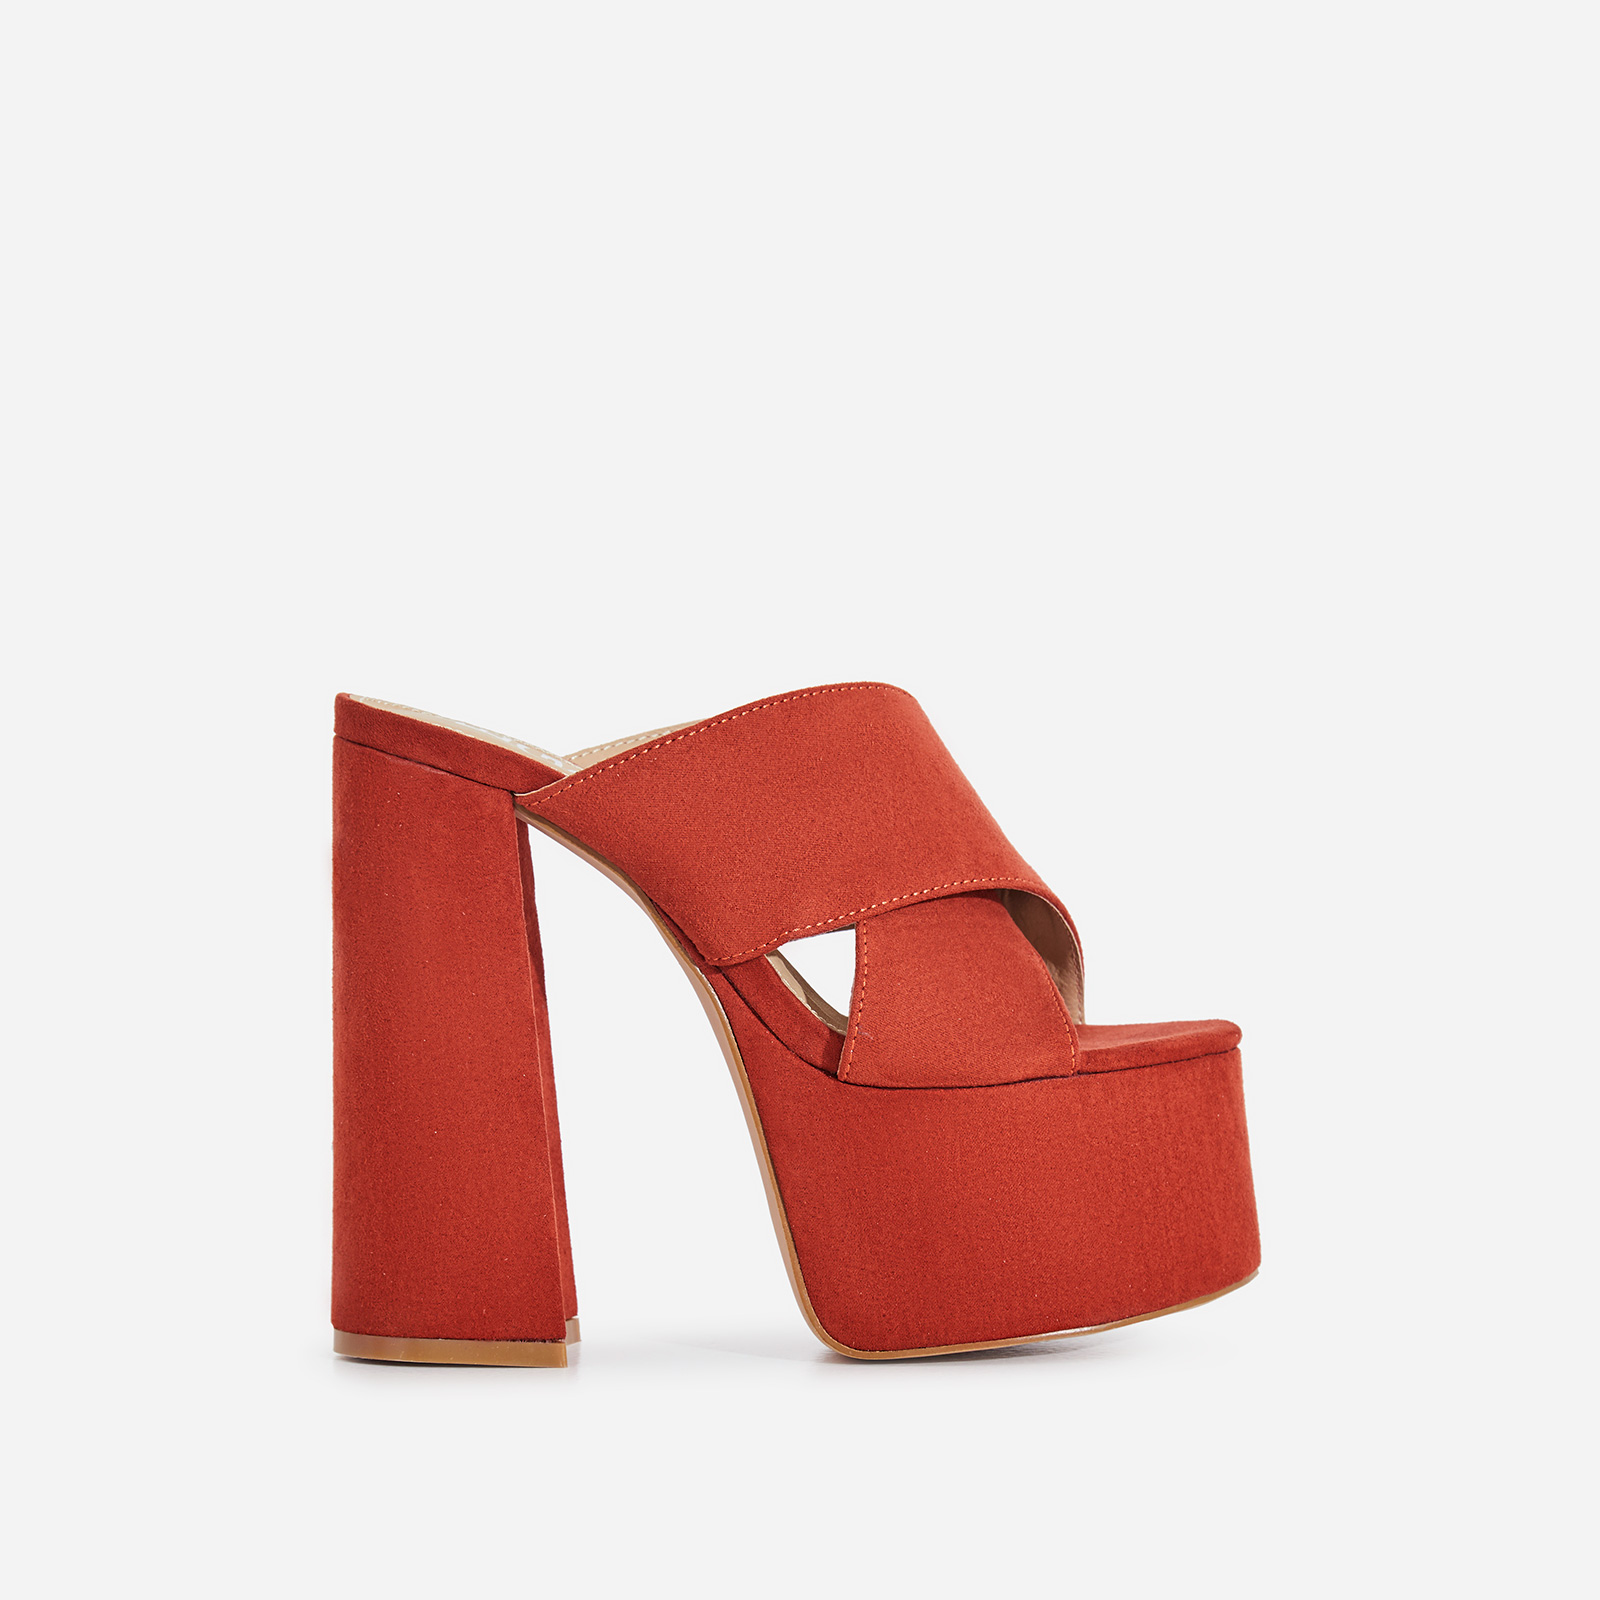 Yaya Platform Peep Toe Mule In Brick Red Faux Suede